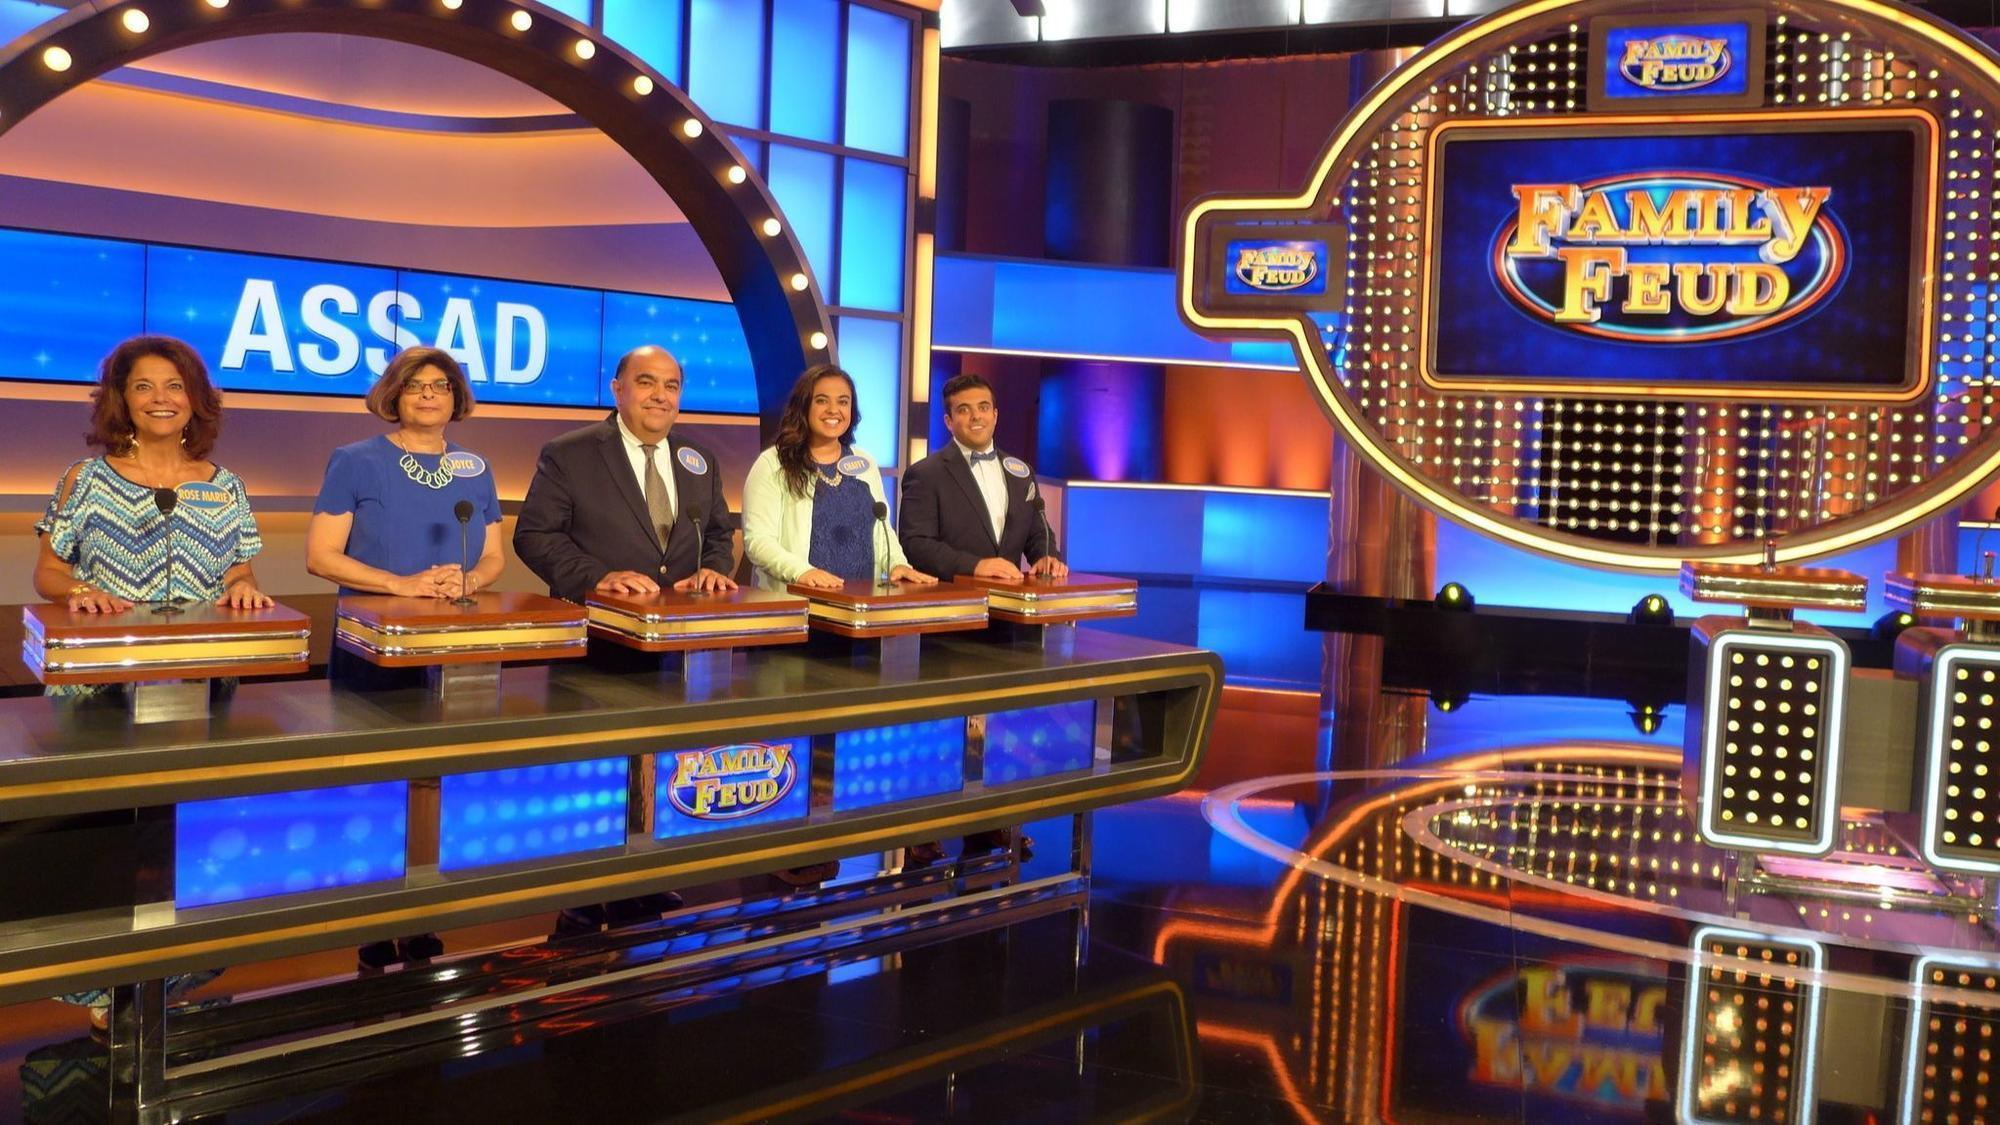 'Family Feud' tryouts are coming to Chicago - RedEye Chicago